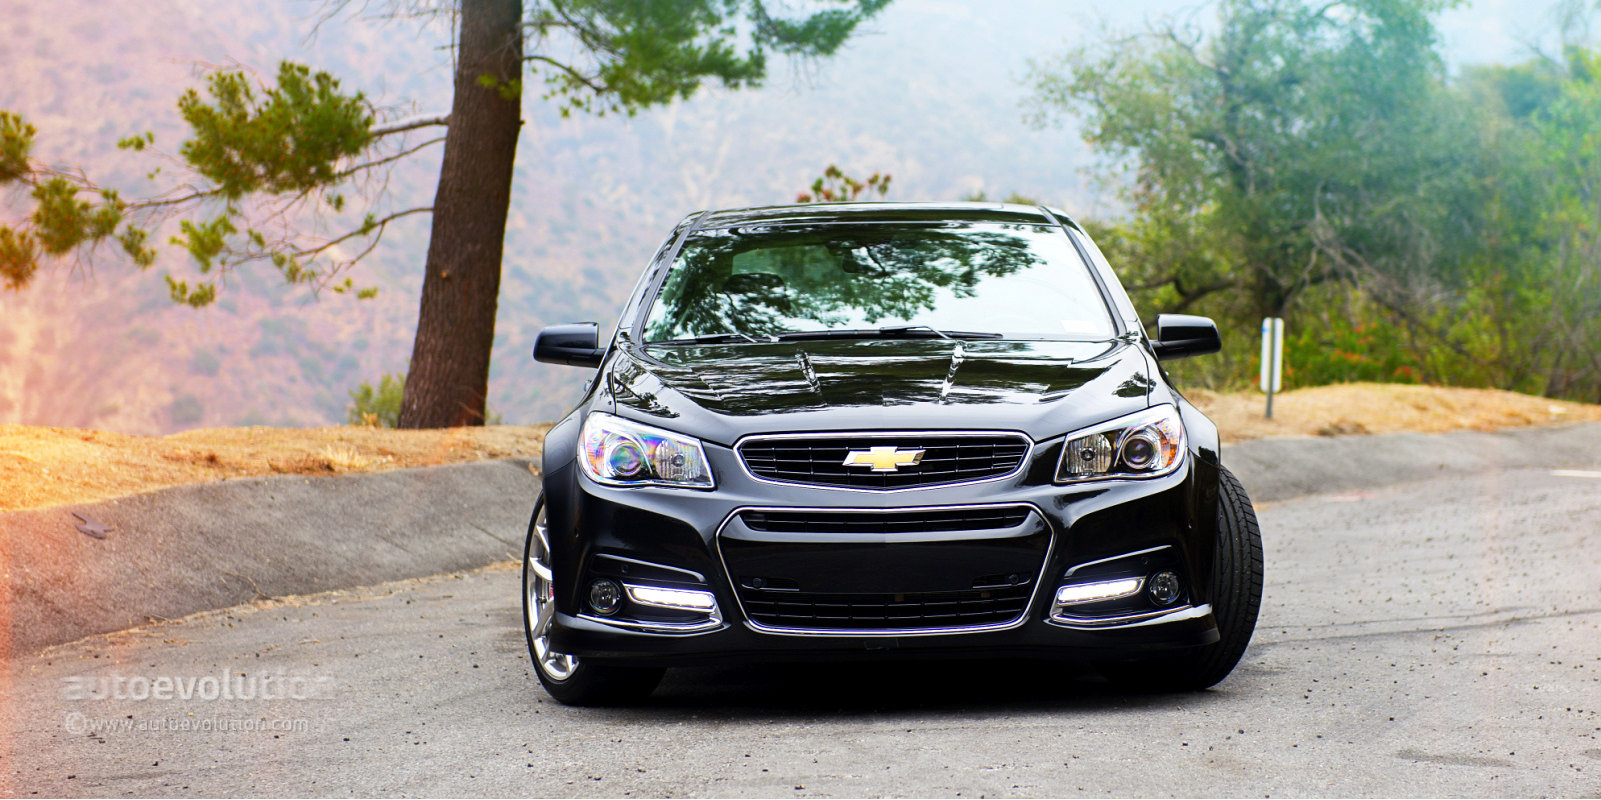 2015 Chevrolet SS Gets 6-Speed Manual, Magnetic Ride Control, OnStar